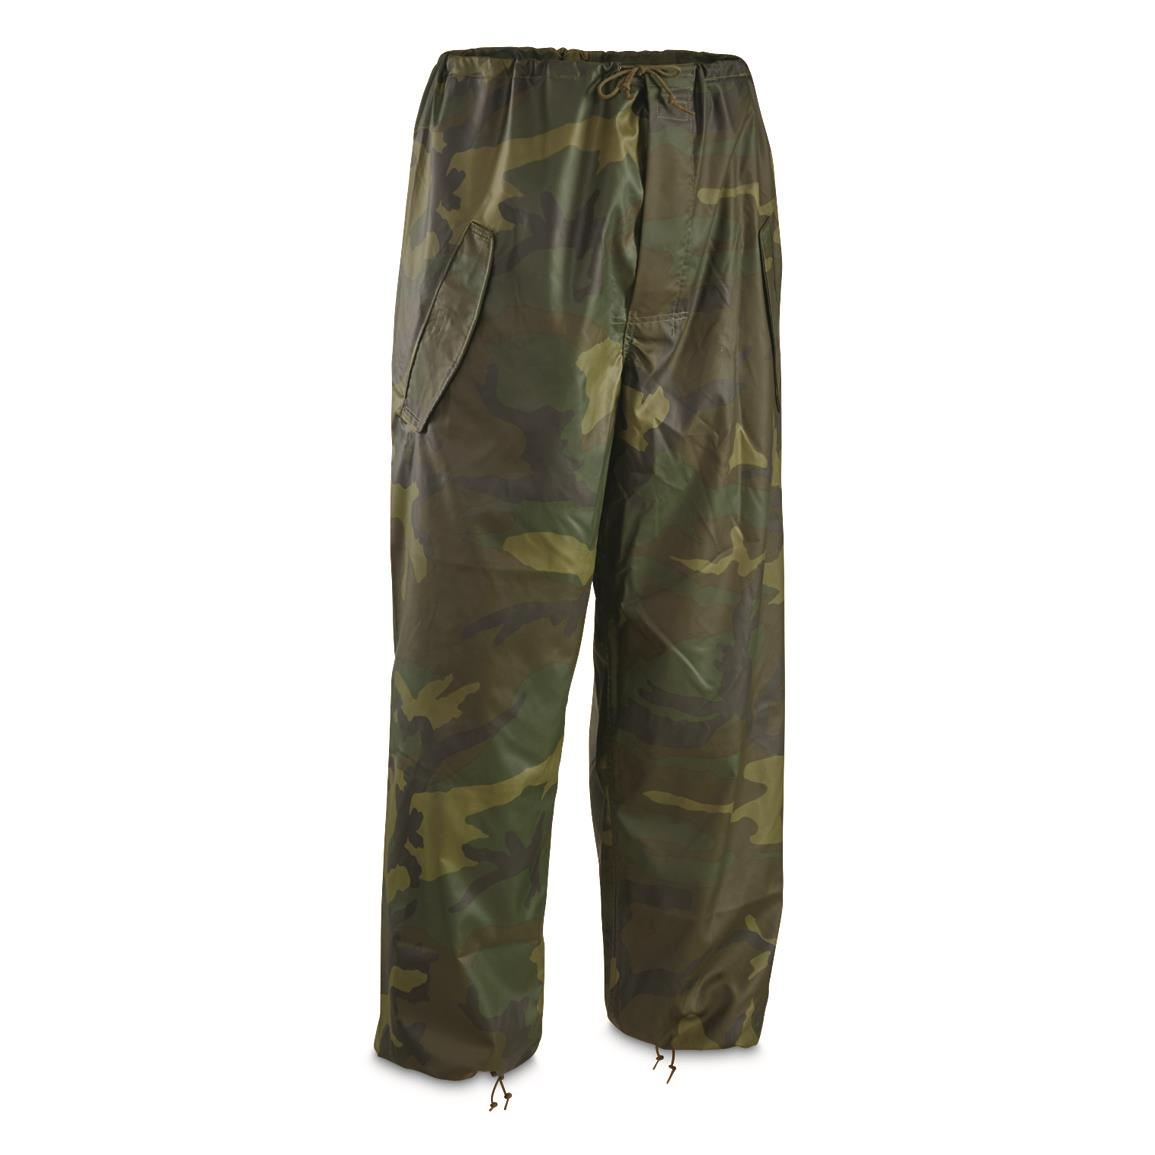 U.S. Military Surplus Woodland Camo Wet Weather Pants, New